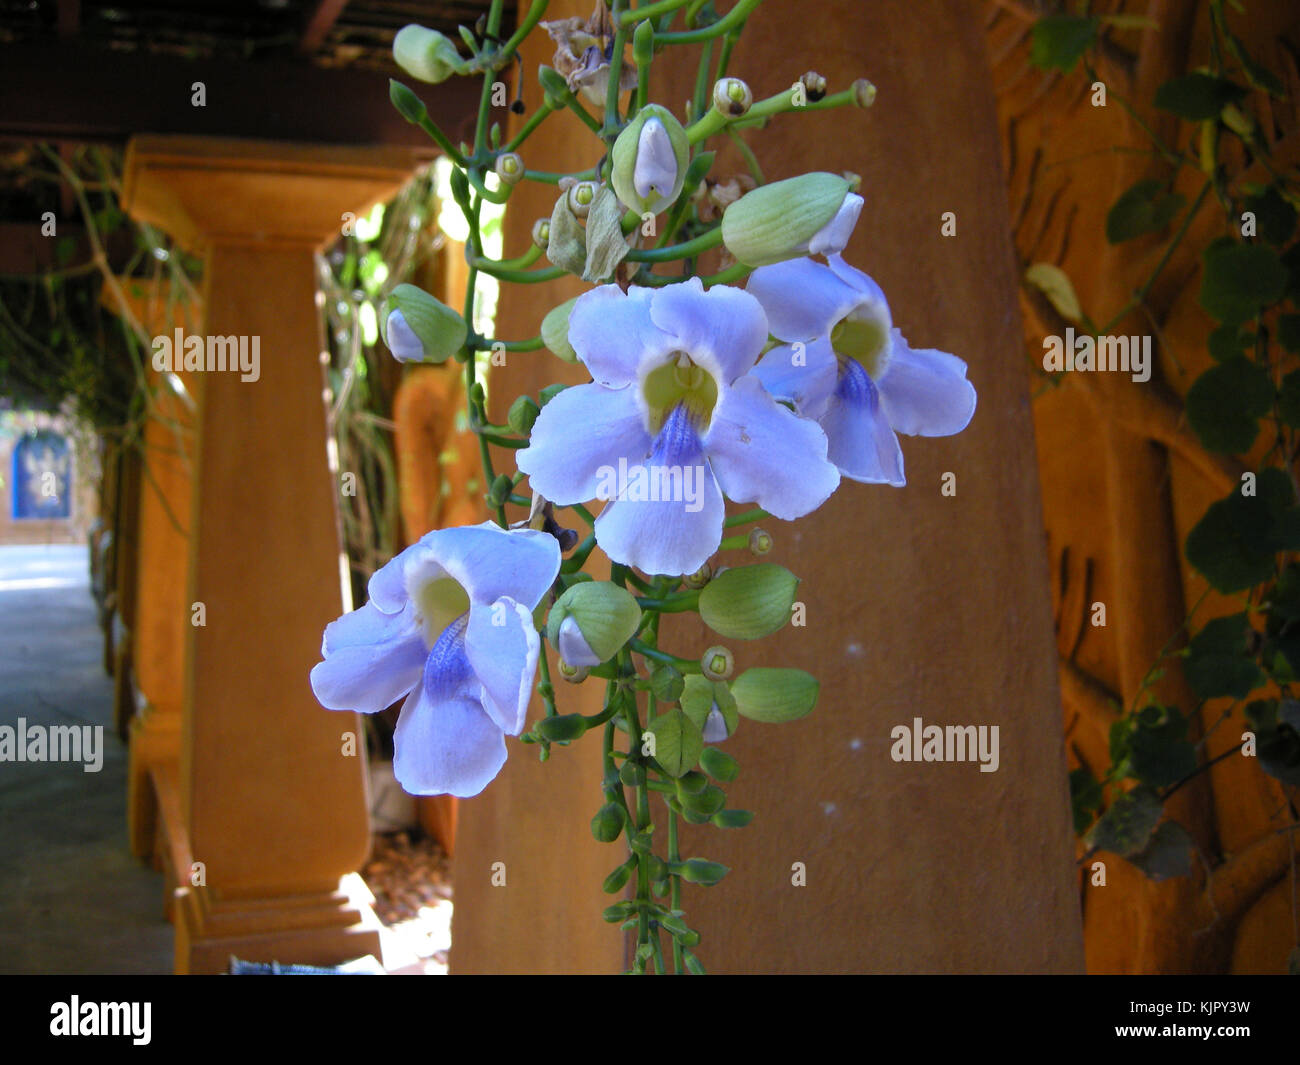 A creeping plant with beautiful blue flowers hanging on this stock a creeping plant with beautiful blue flowers hanging on this pergola hua hin thailand izmirmasajfo Images